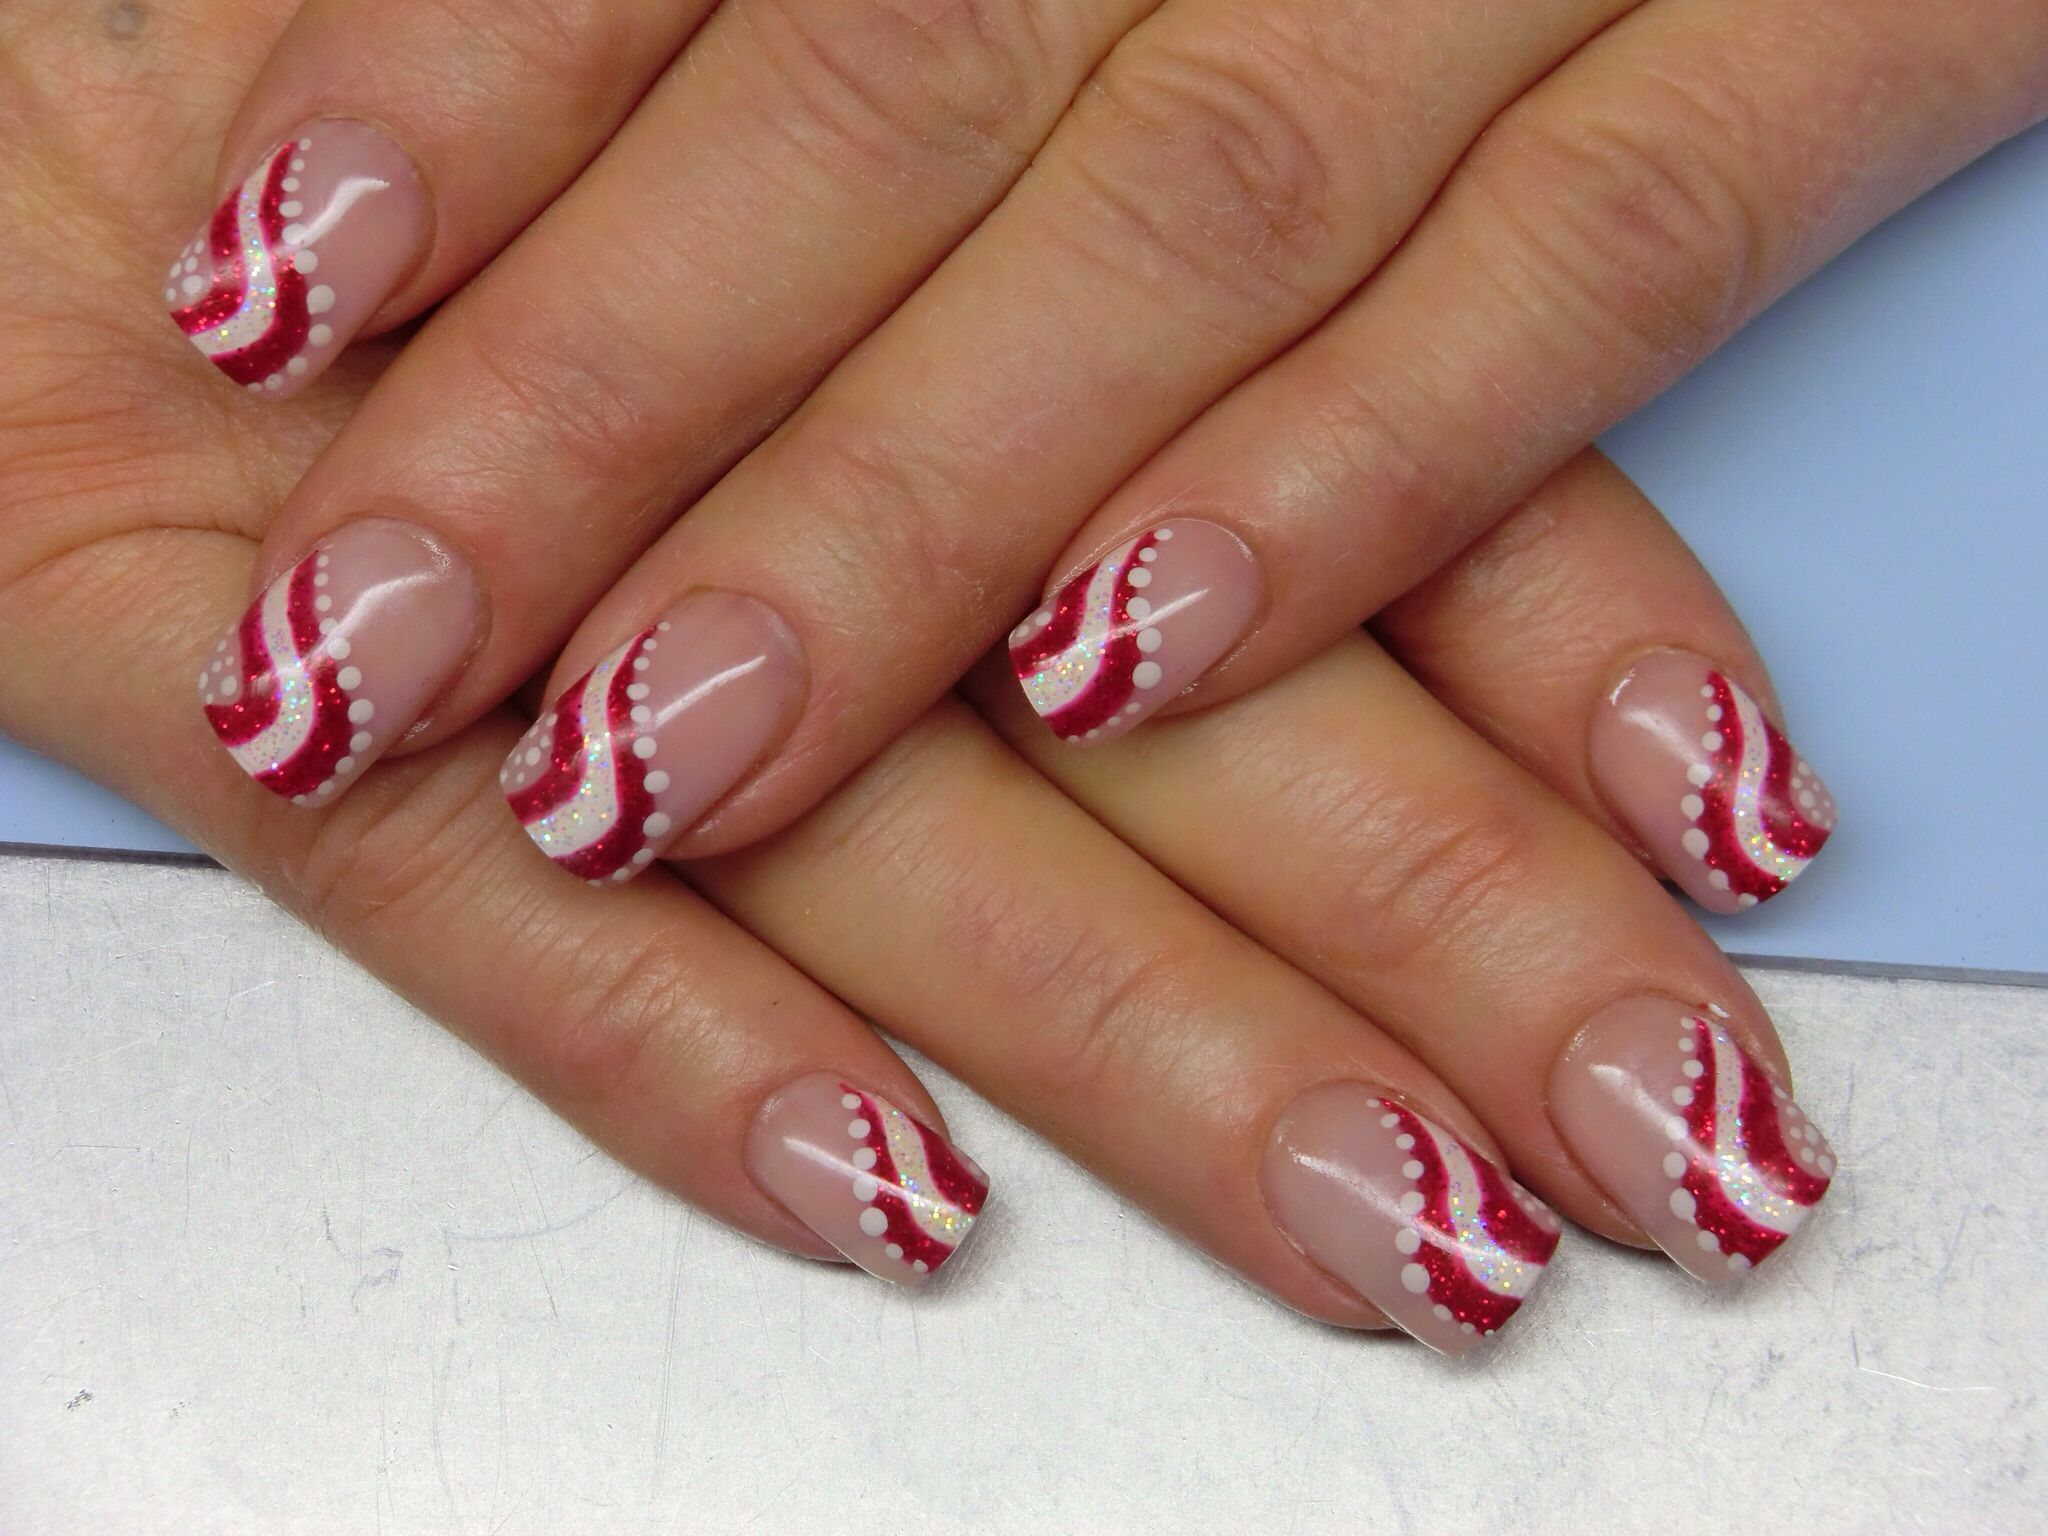 Candy cane stripes nail art design Christmas gel nails